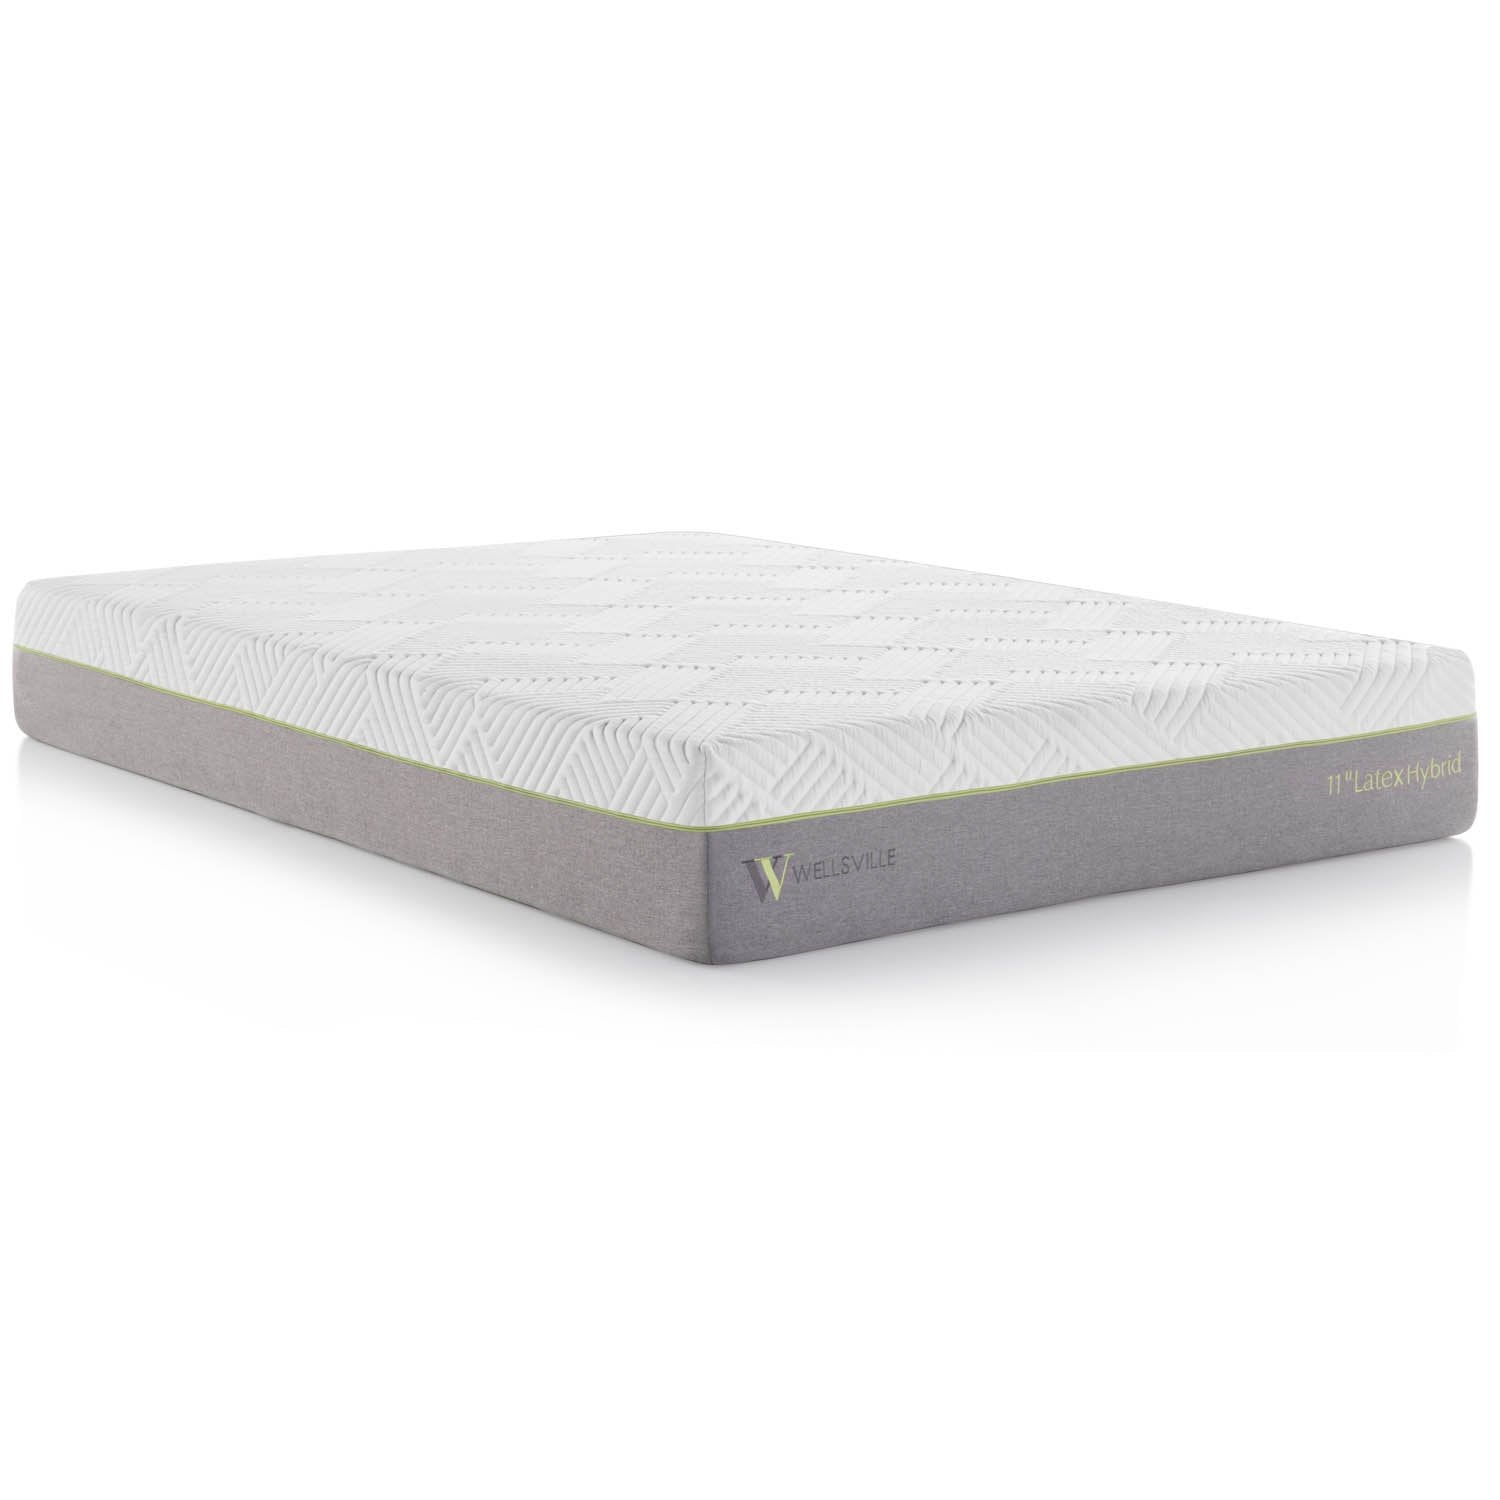 picture media goodbed mattress ultimate topics com mattresses hybrid guide